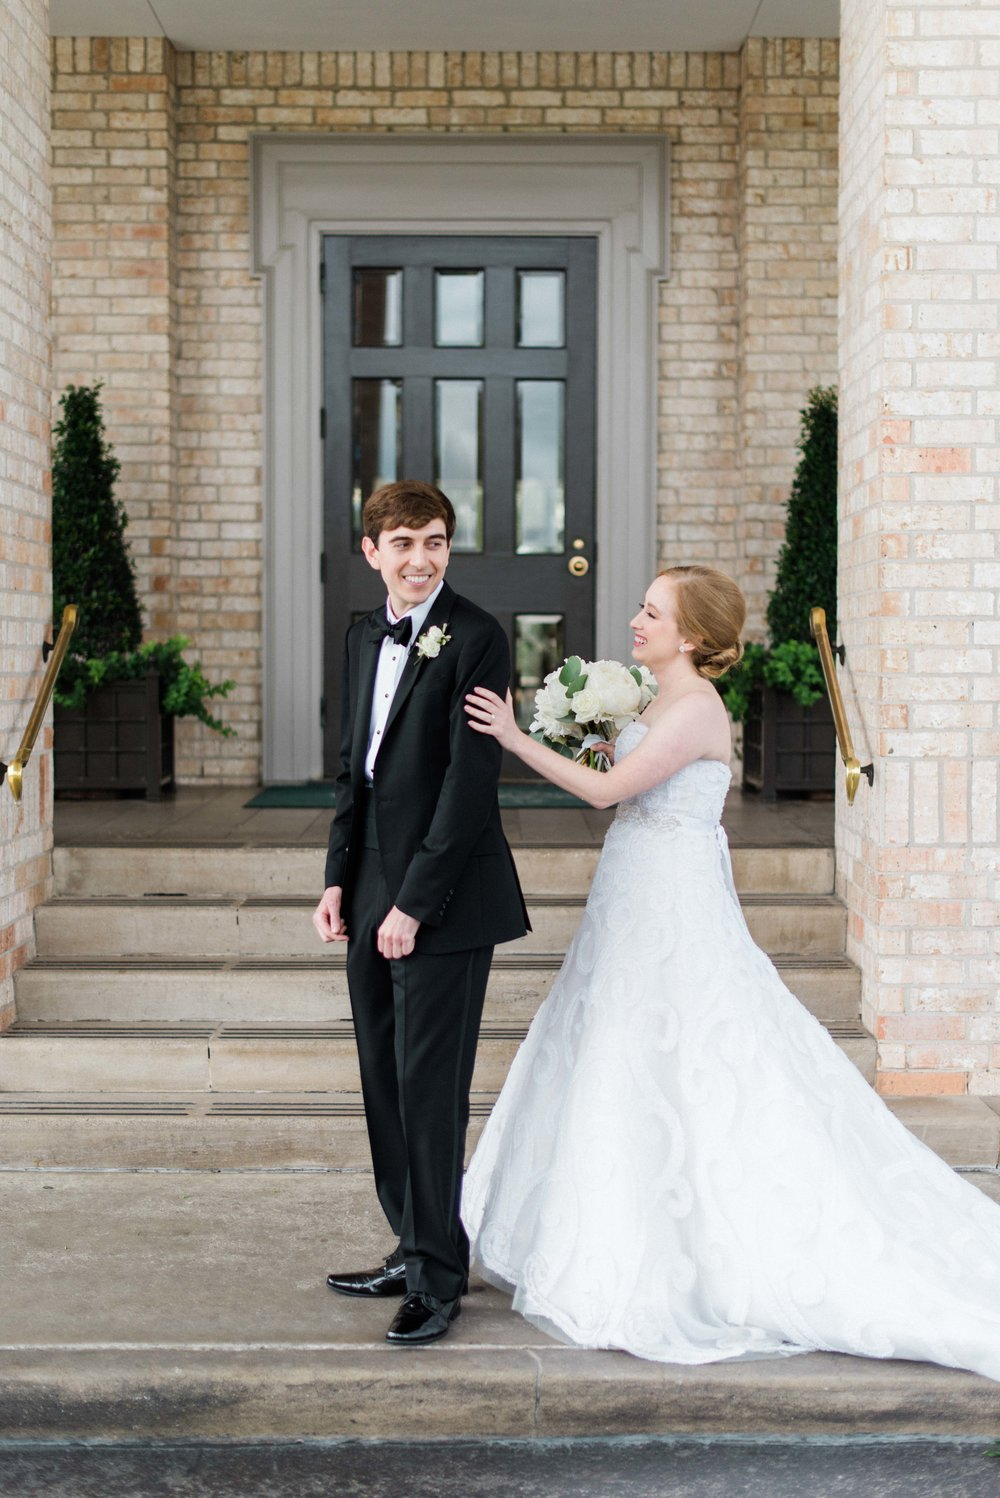 Fine-Art-Film-Houston-Wedding-Photographer-Best-Top-Luxury-Texas-Austin-Dallas-Destination-Dana-Fernandez-Photography-River-Oaks-Country-Club-South-Main-Baptist-Ceremony-Reception-Wedding-21.jpg